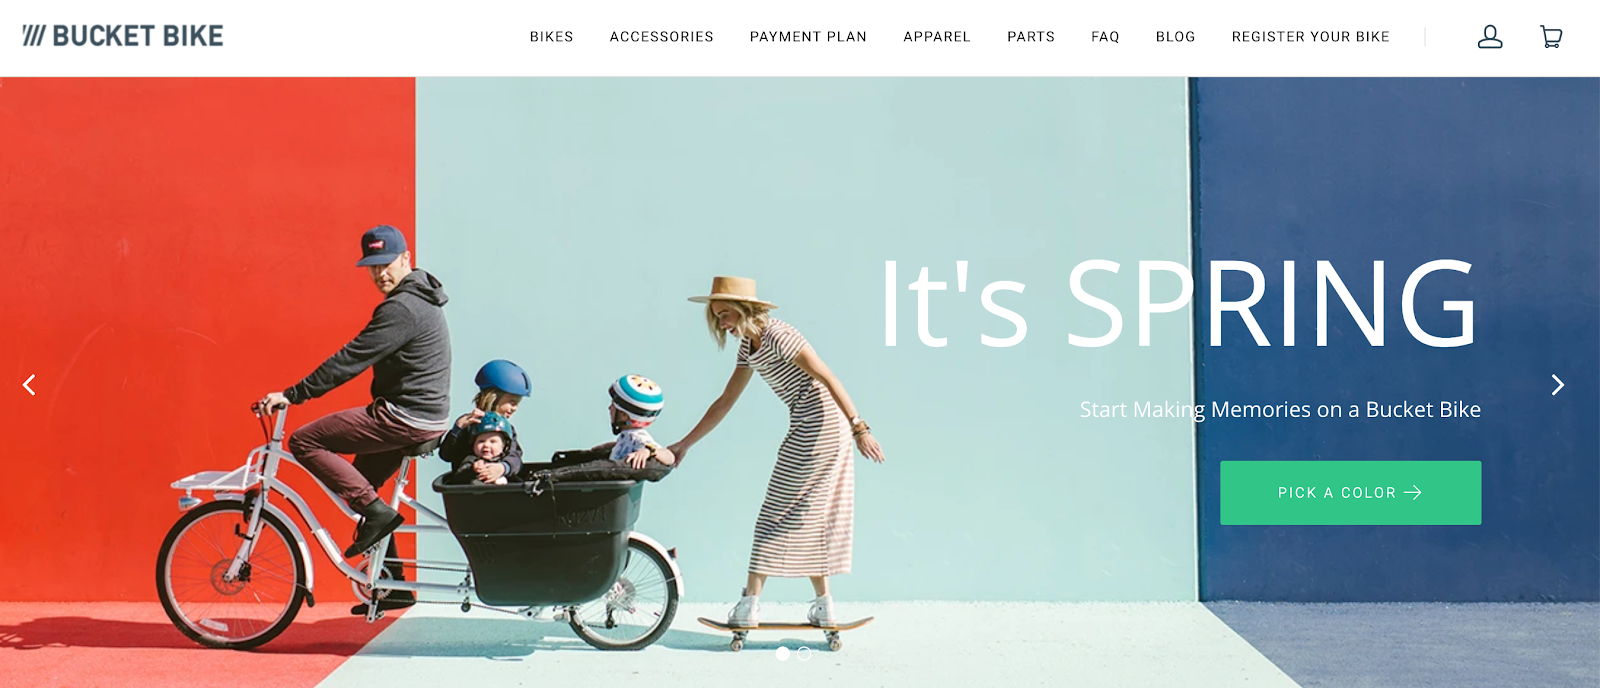 Madsen Cycles homepage with family in Madsen bike in background